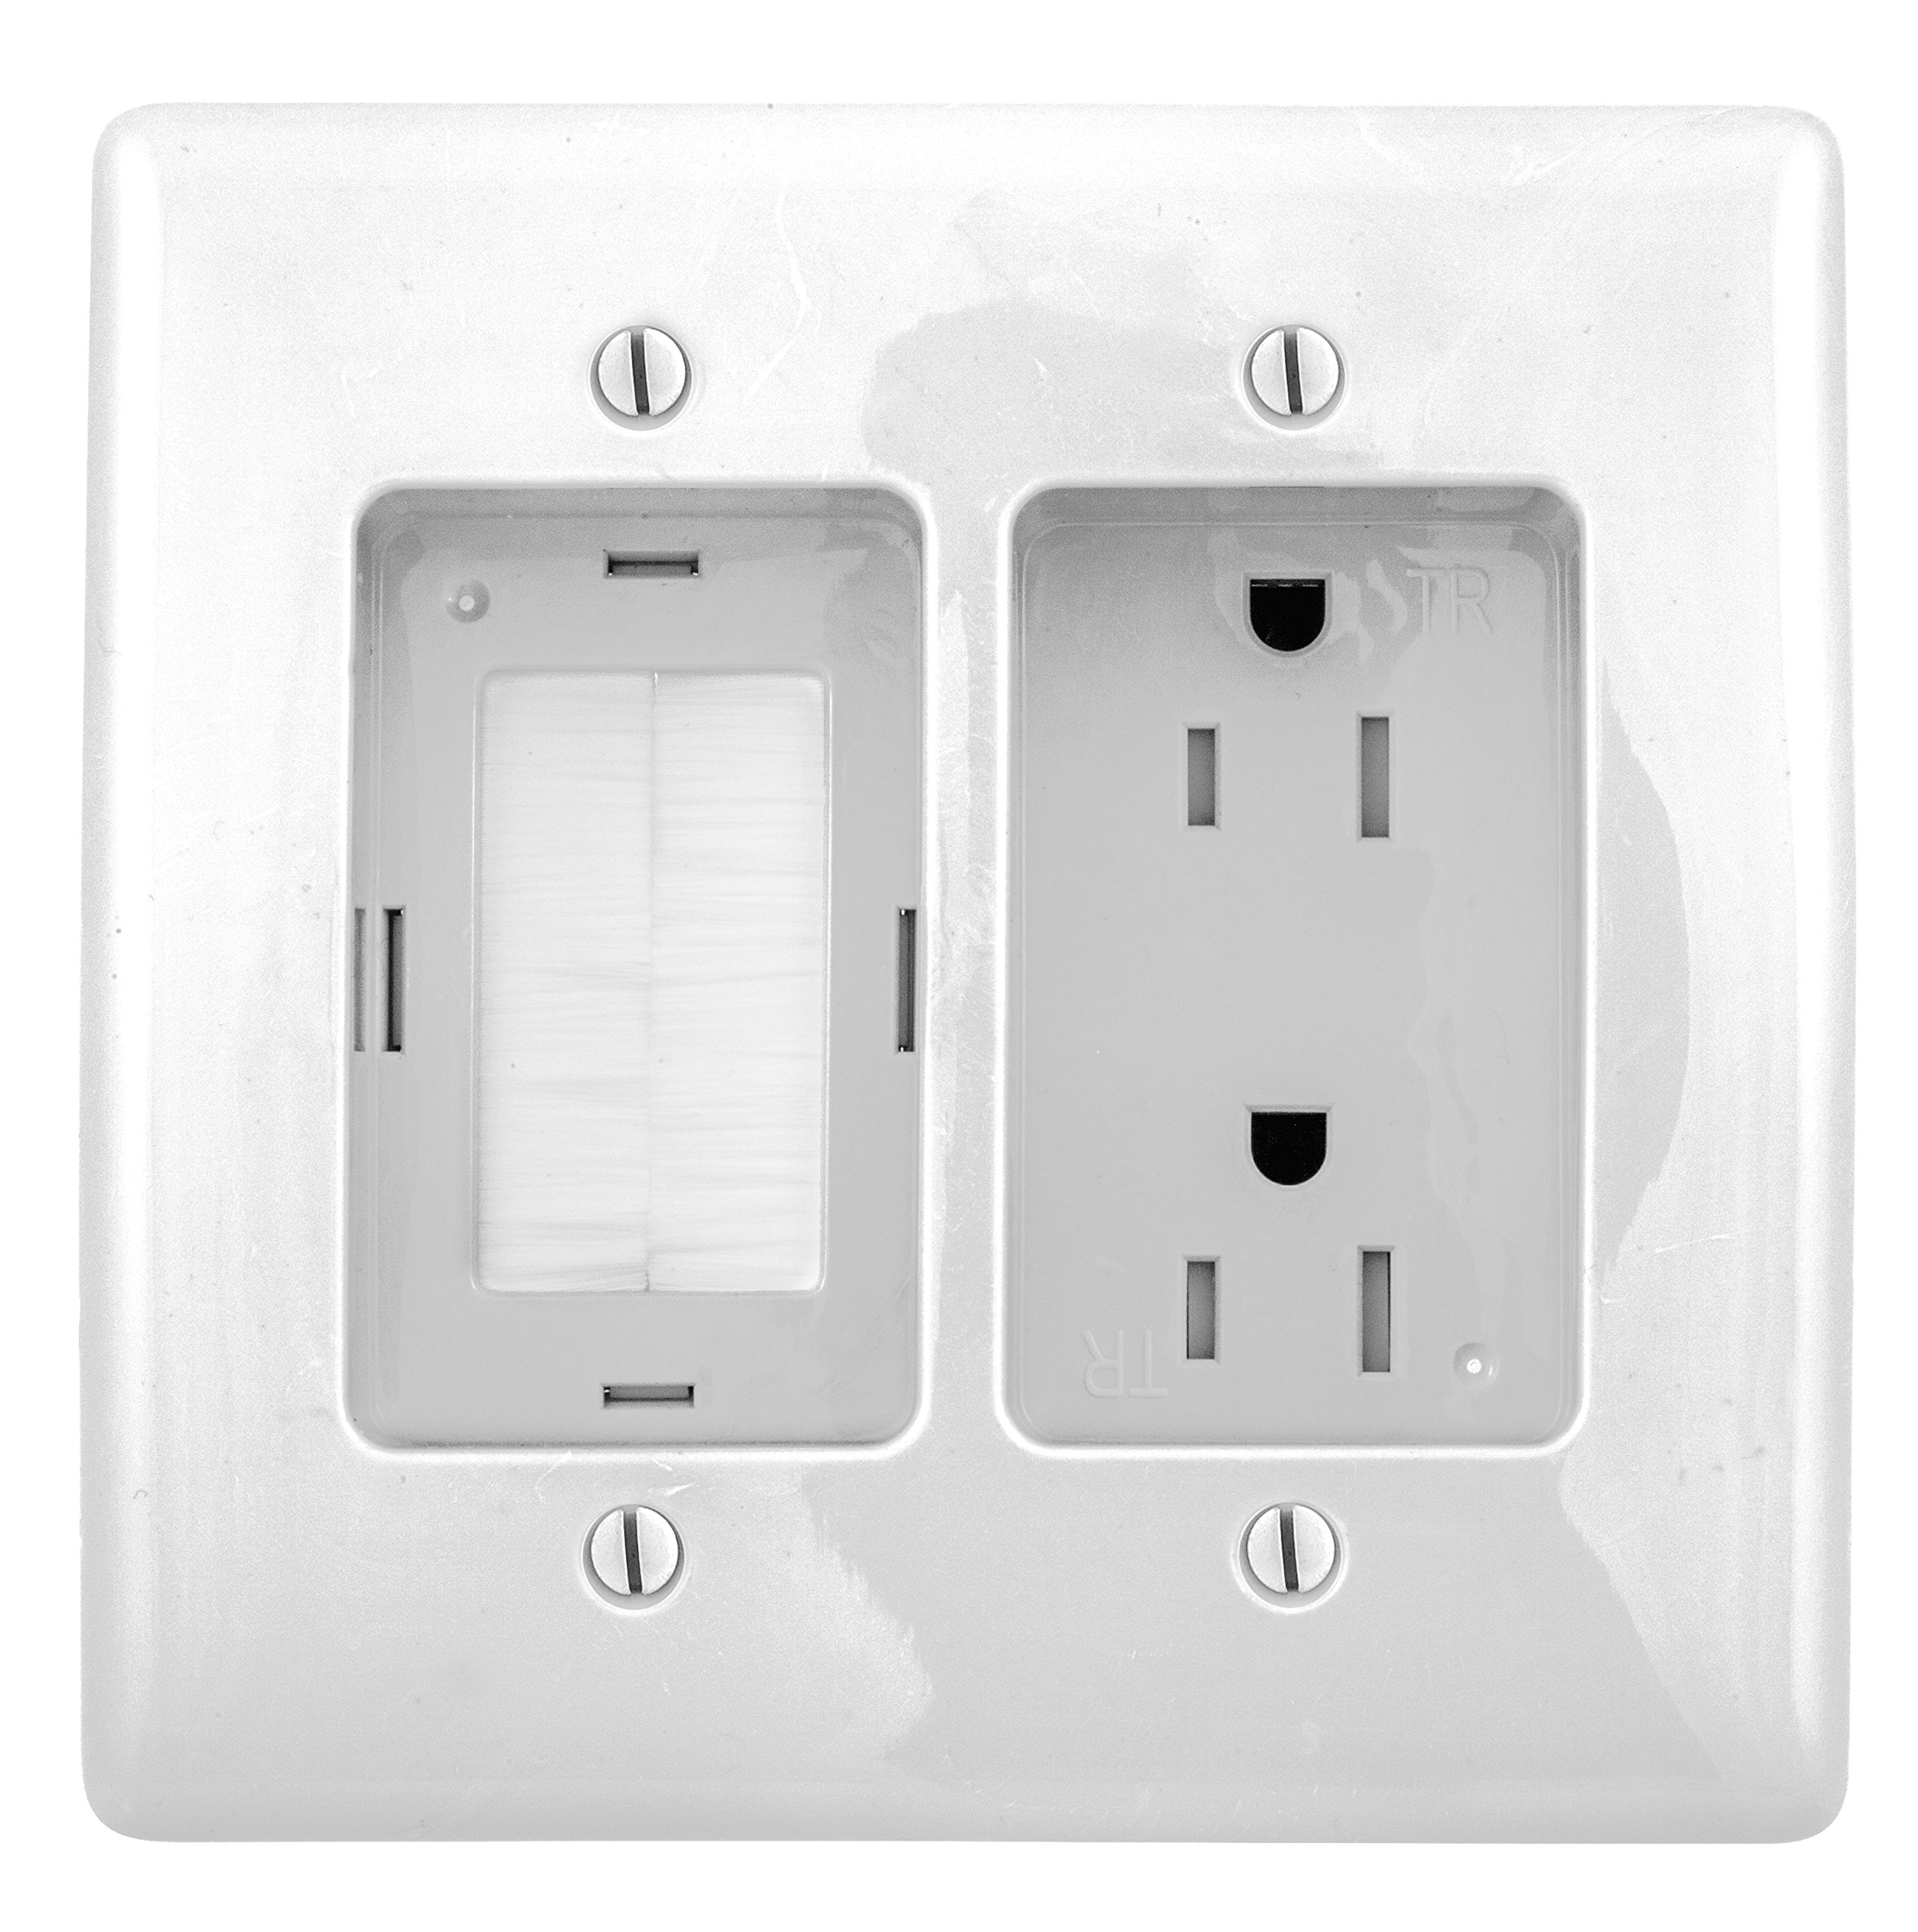 Bryant Electric RR1512W 2-Gang Recessed TV Connection Outlet Plate with 15 Amp 125V Tamper-Resistant Duplex Receptacle with One Pass-Thru Opening, White by Bryant Electric